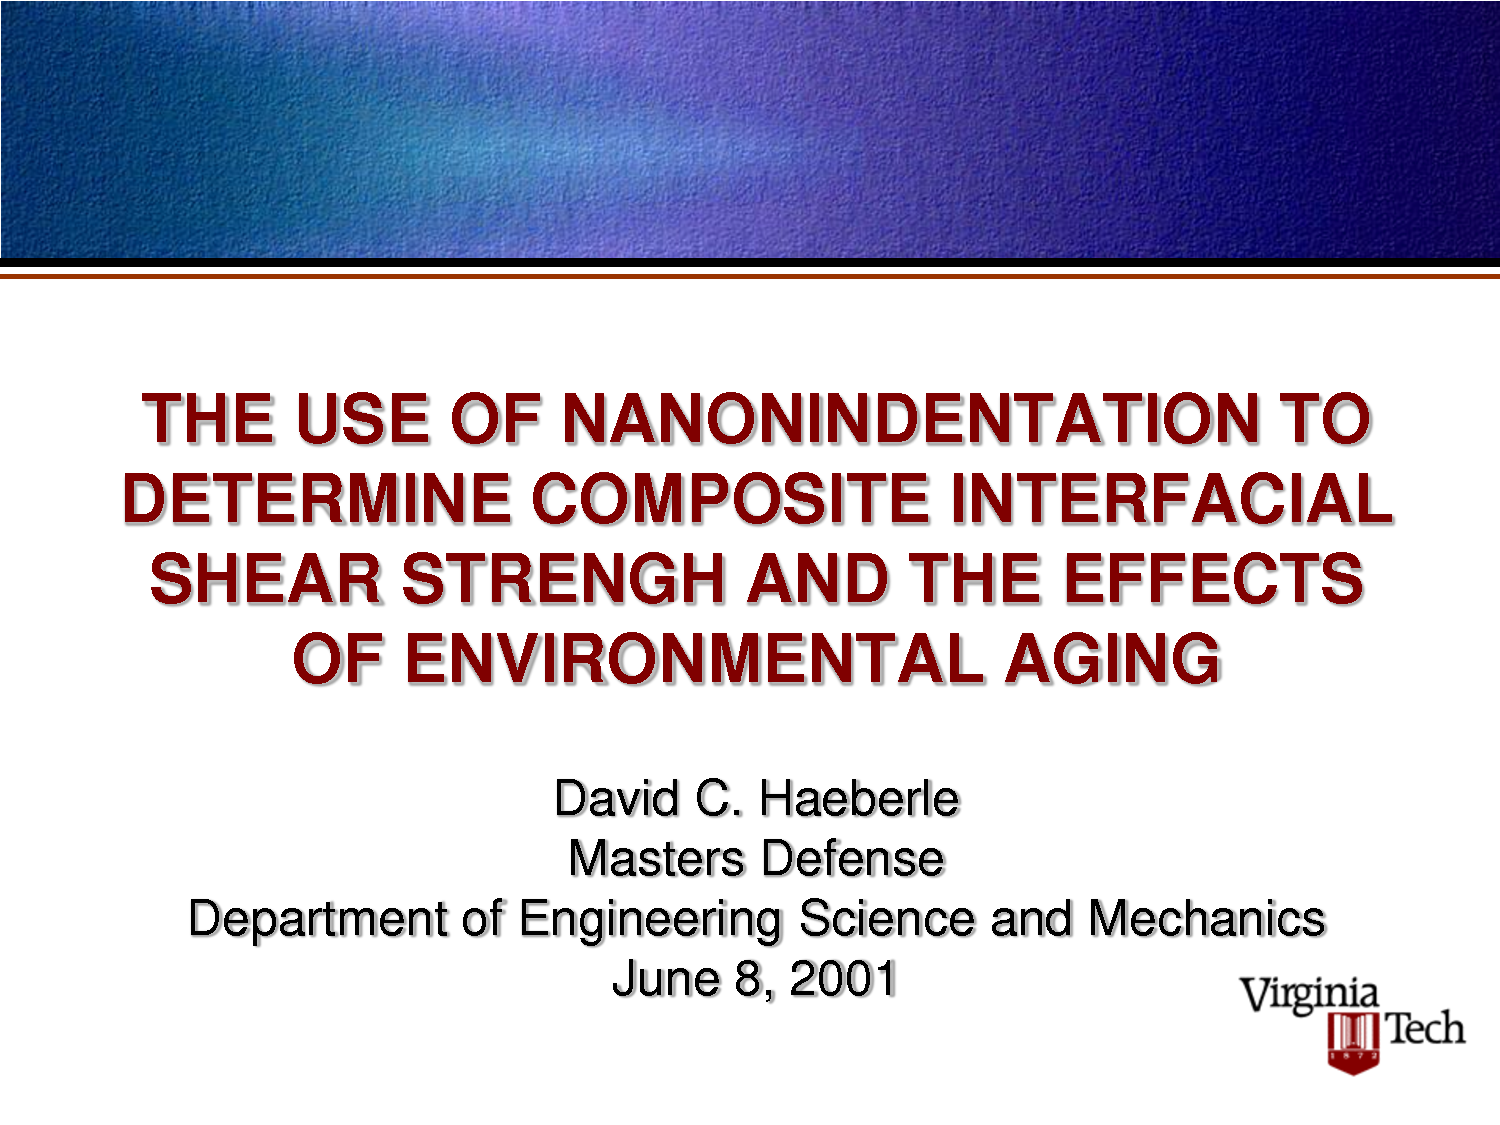 science ppt | thesis defense haeberl.ppt - engineering science and, Modern powerpoint